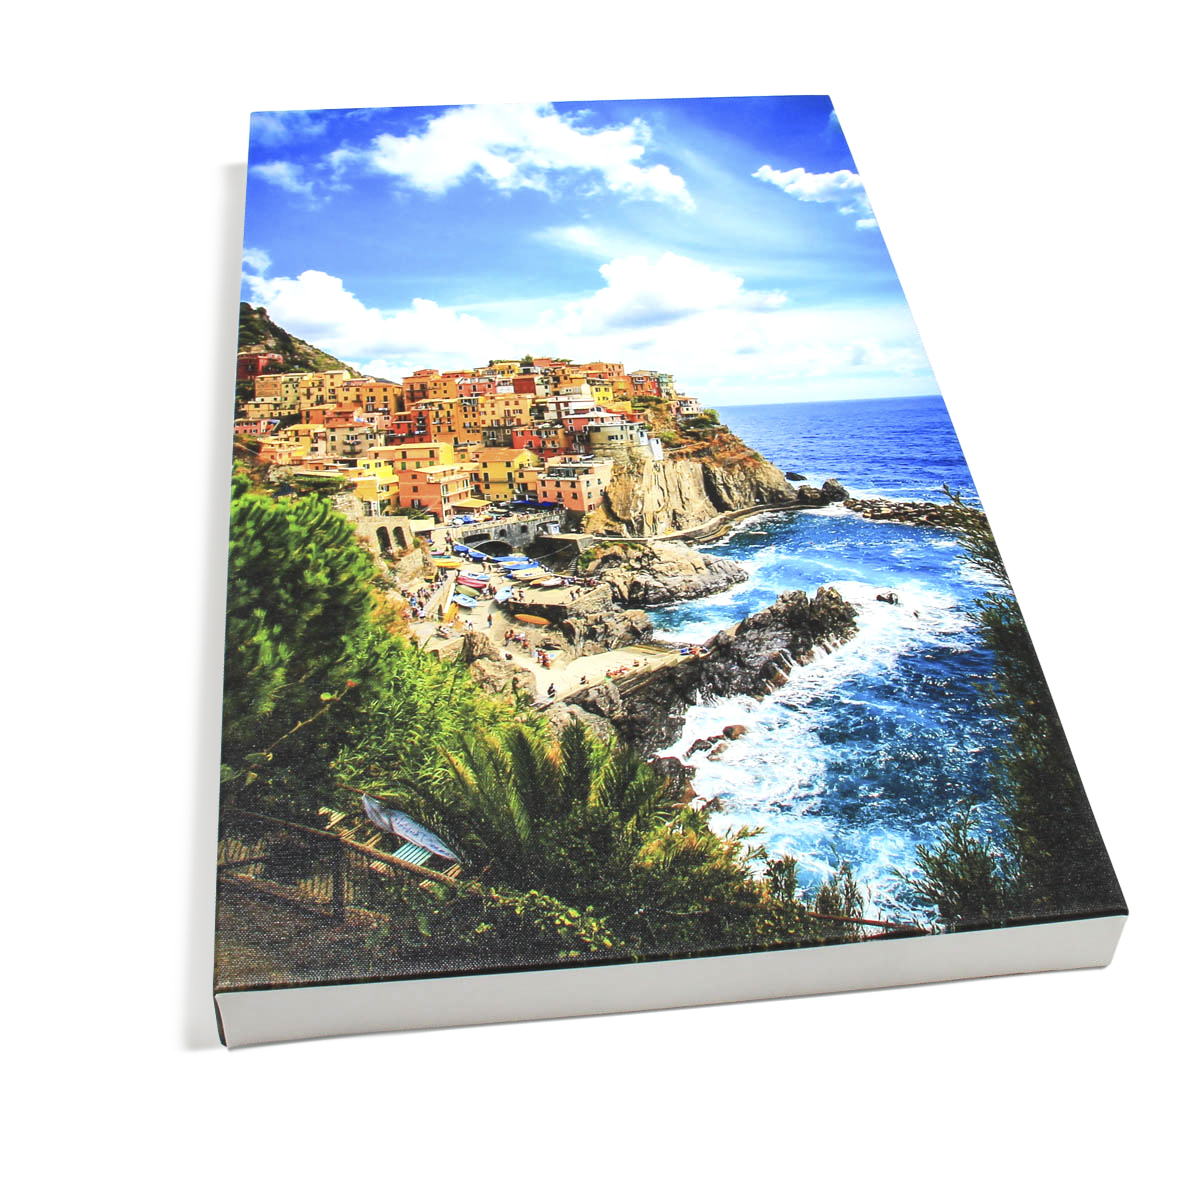 Order your custom canvas prints online today artisanhd for Buy canvas prints online